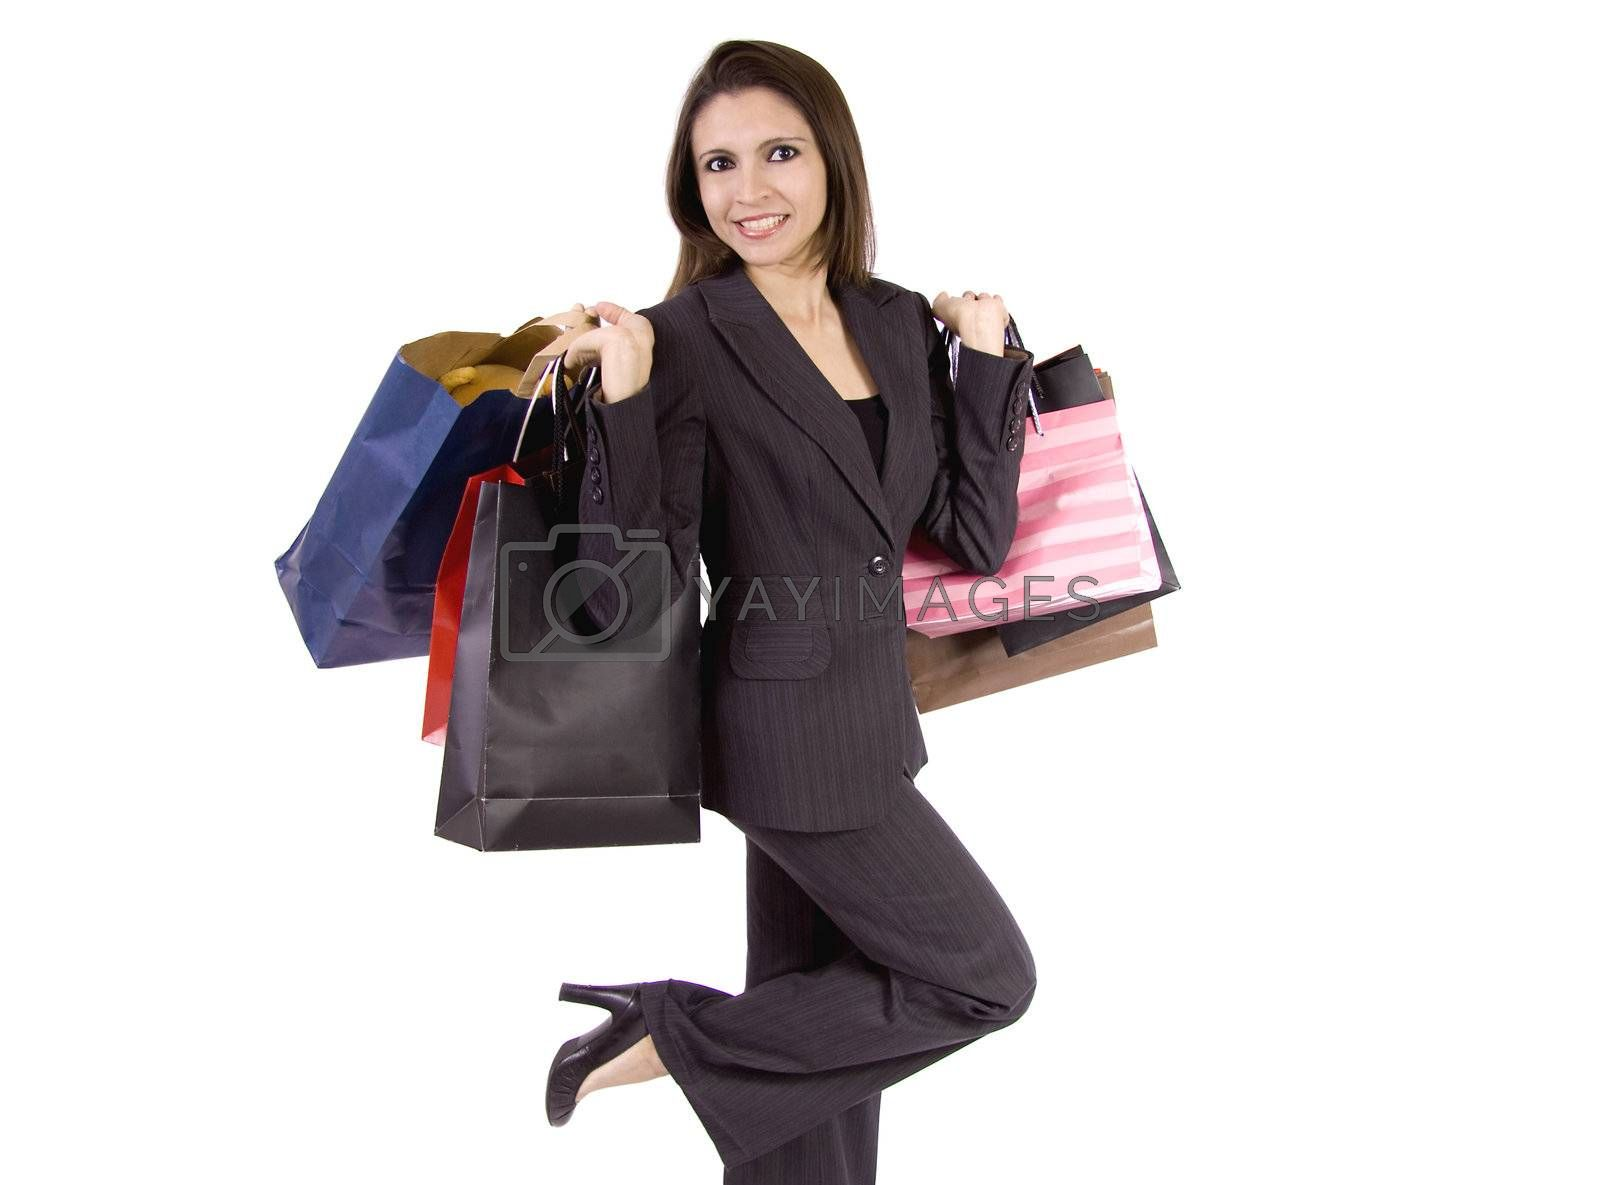 A beautiful woman is celebrating all the things she has bought on a shopping spree